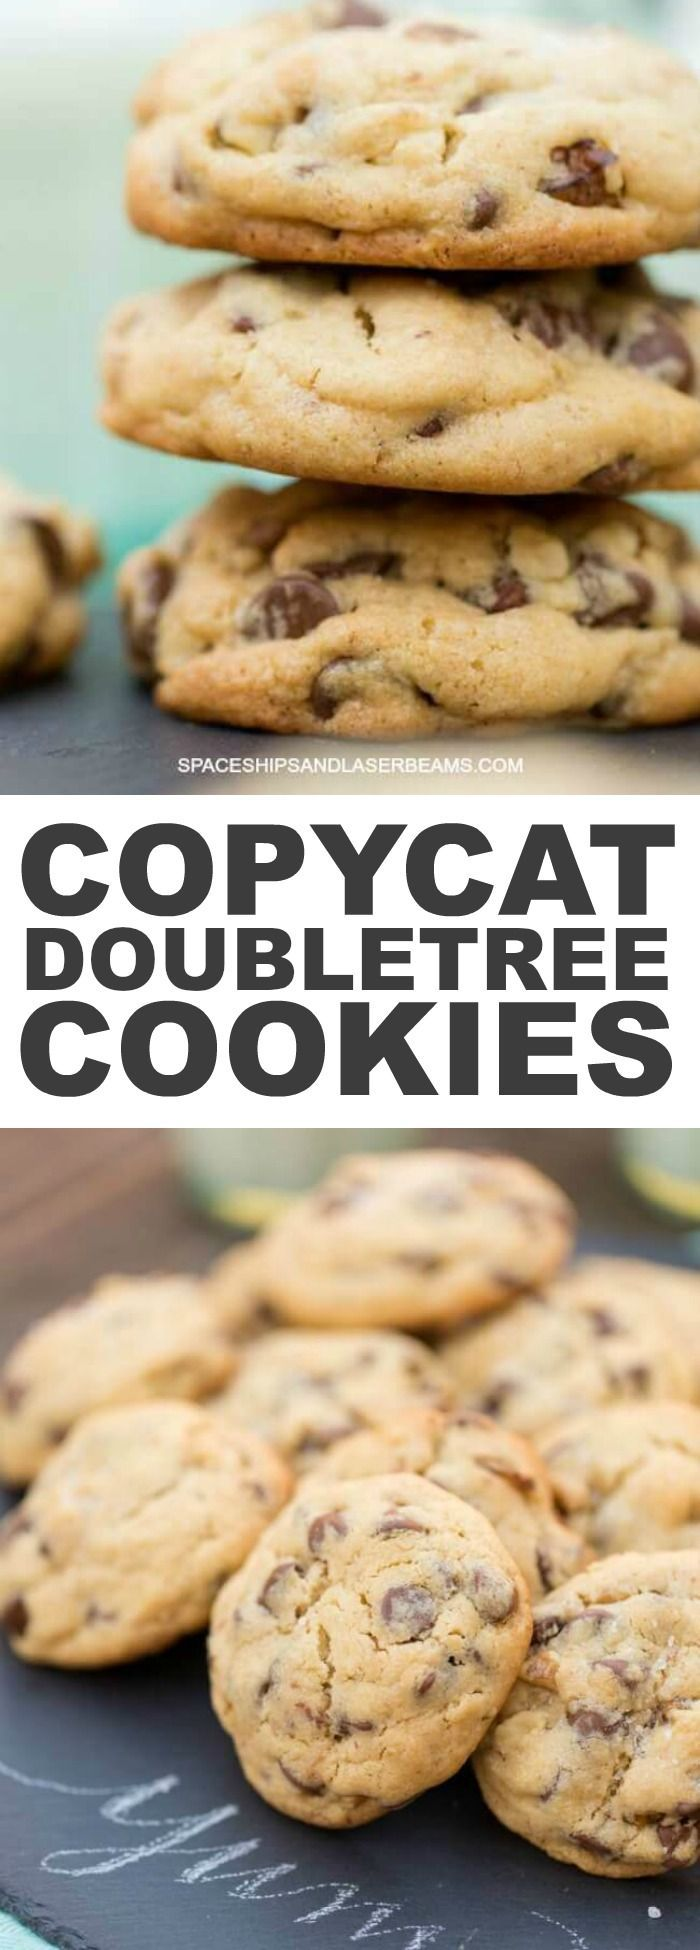 These are the most amazing Hilton Doubletree Chocolate Chip Cookies